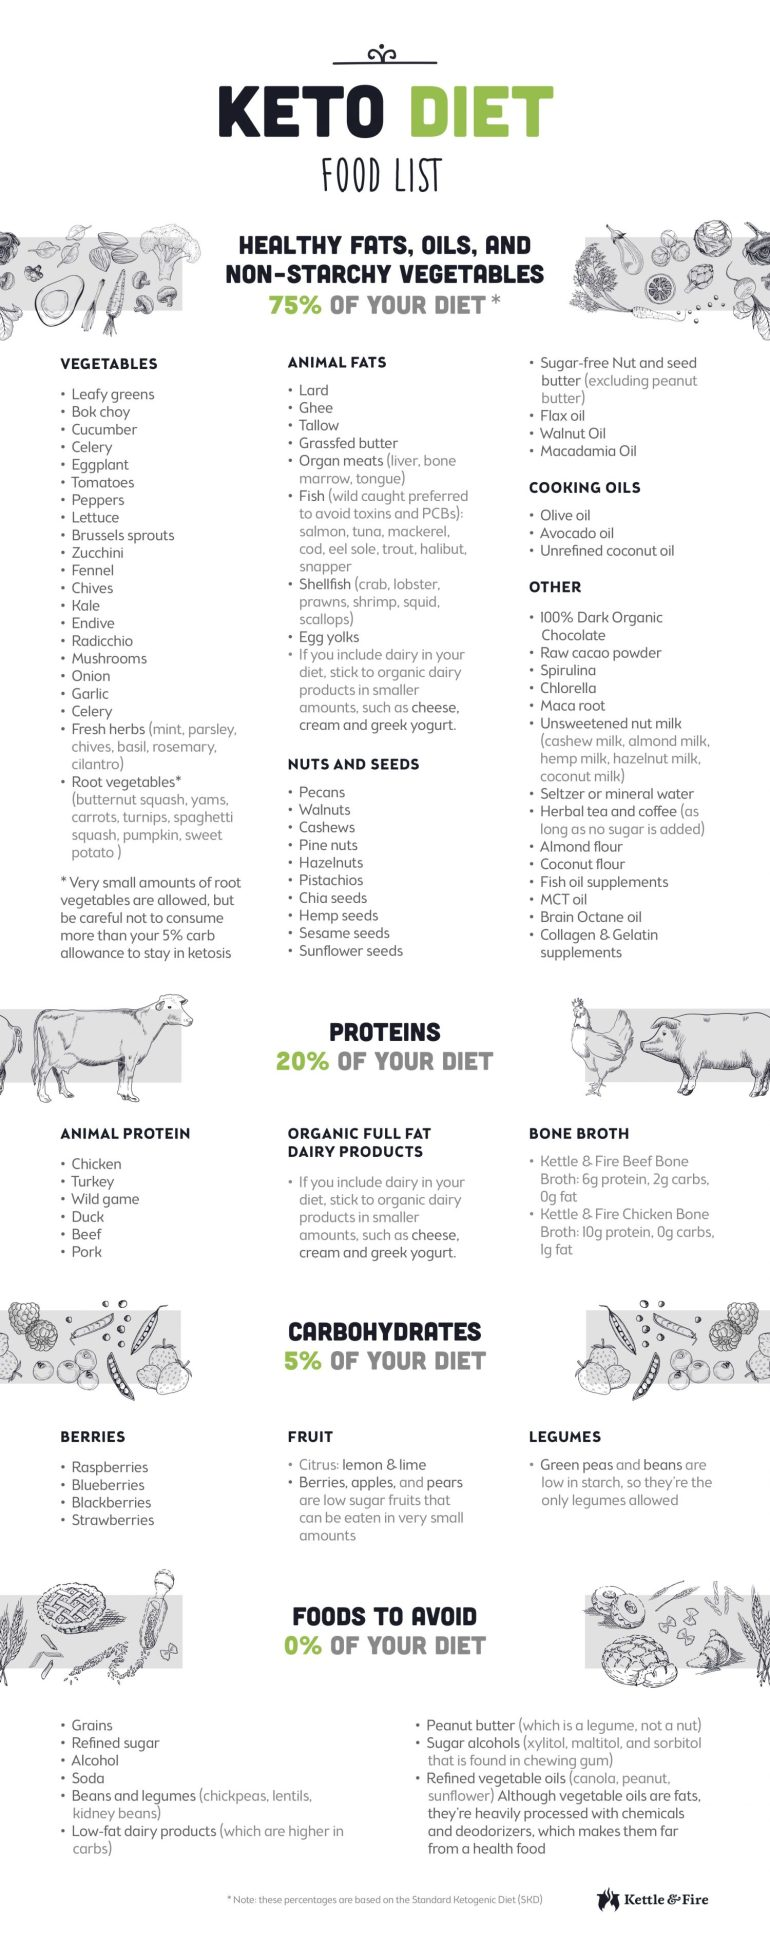 Keto-Diet-Food-List-Infographic-e1496168